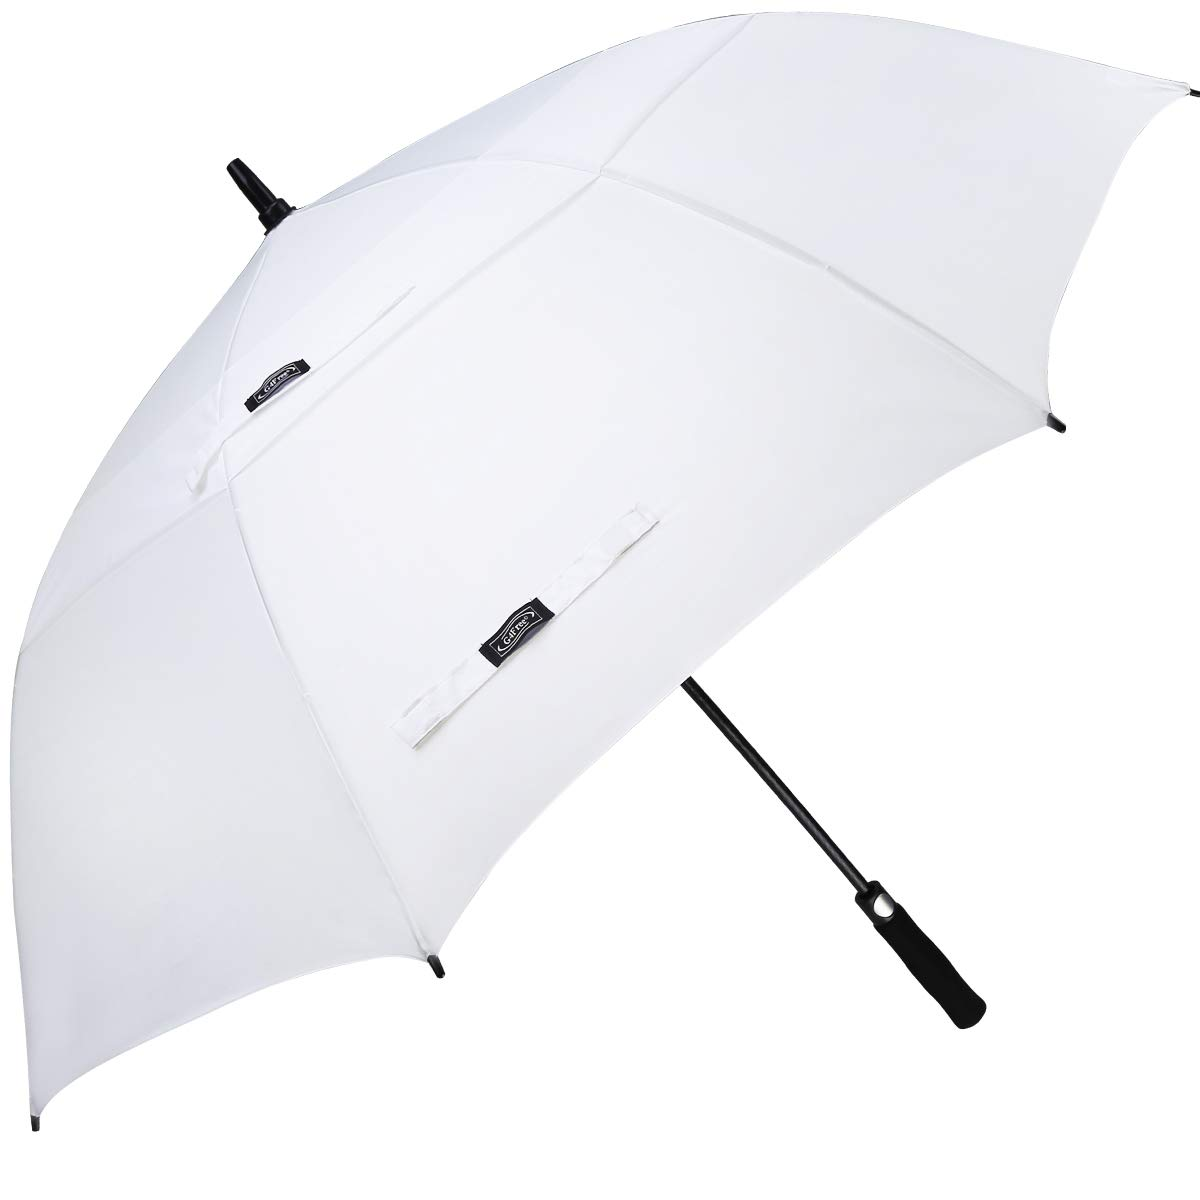 G4Free 62 Inch Automatic Open Golf Umbrella Extra Large Oversize Double Canopy Vented Windproof Waterproof Stick Umbrellas(White) by G4Free